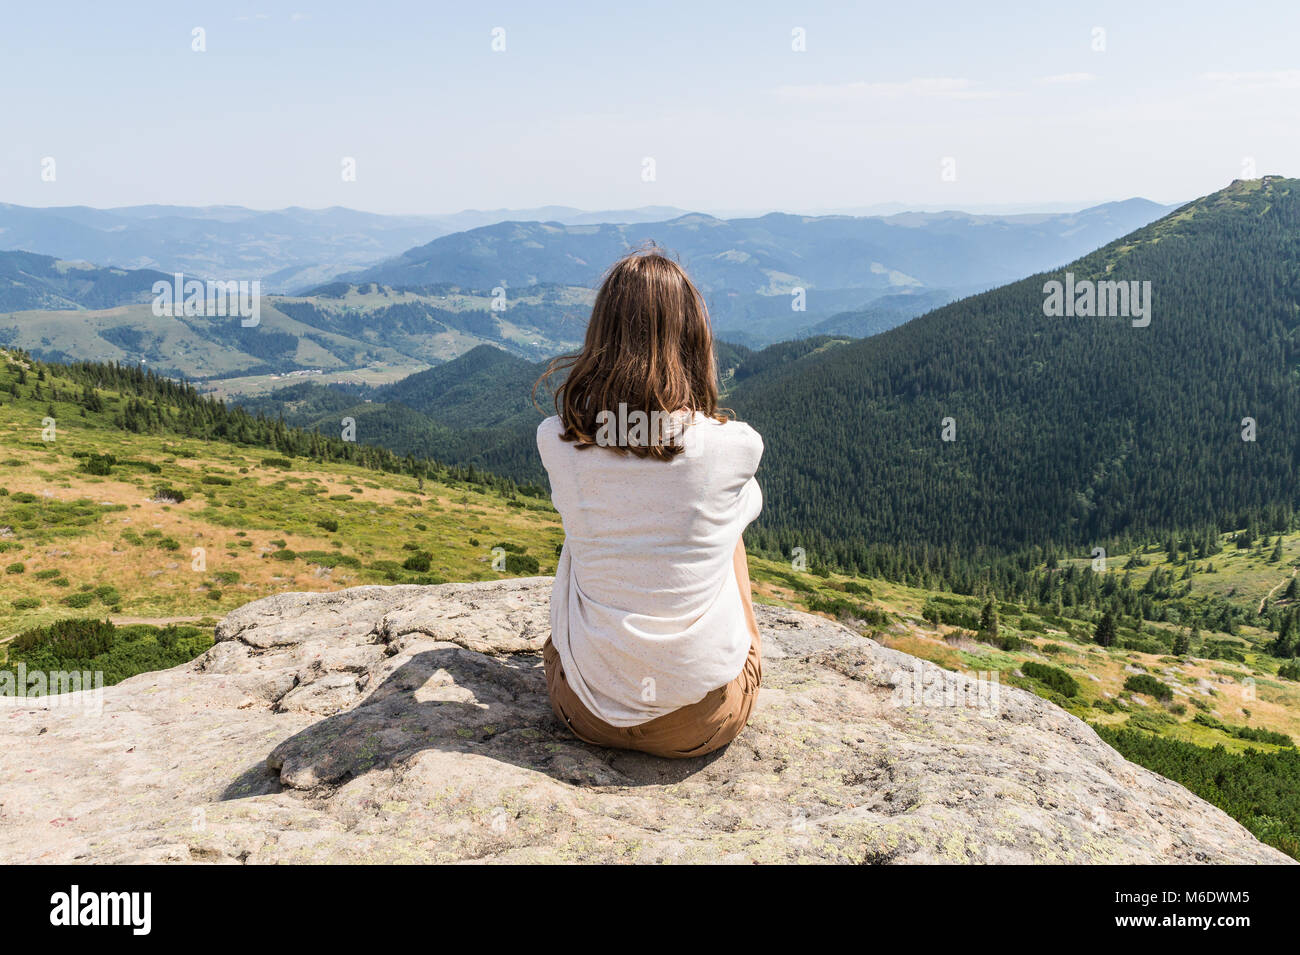 girl tourist enjoys gorgeous landscape scenery on hot sunny day - Stock Image